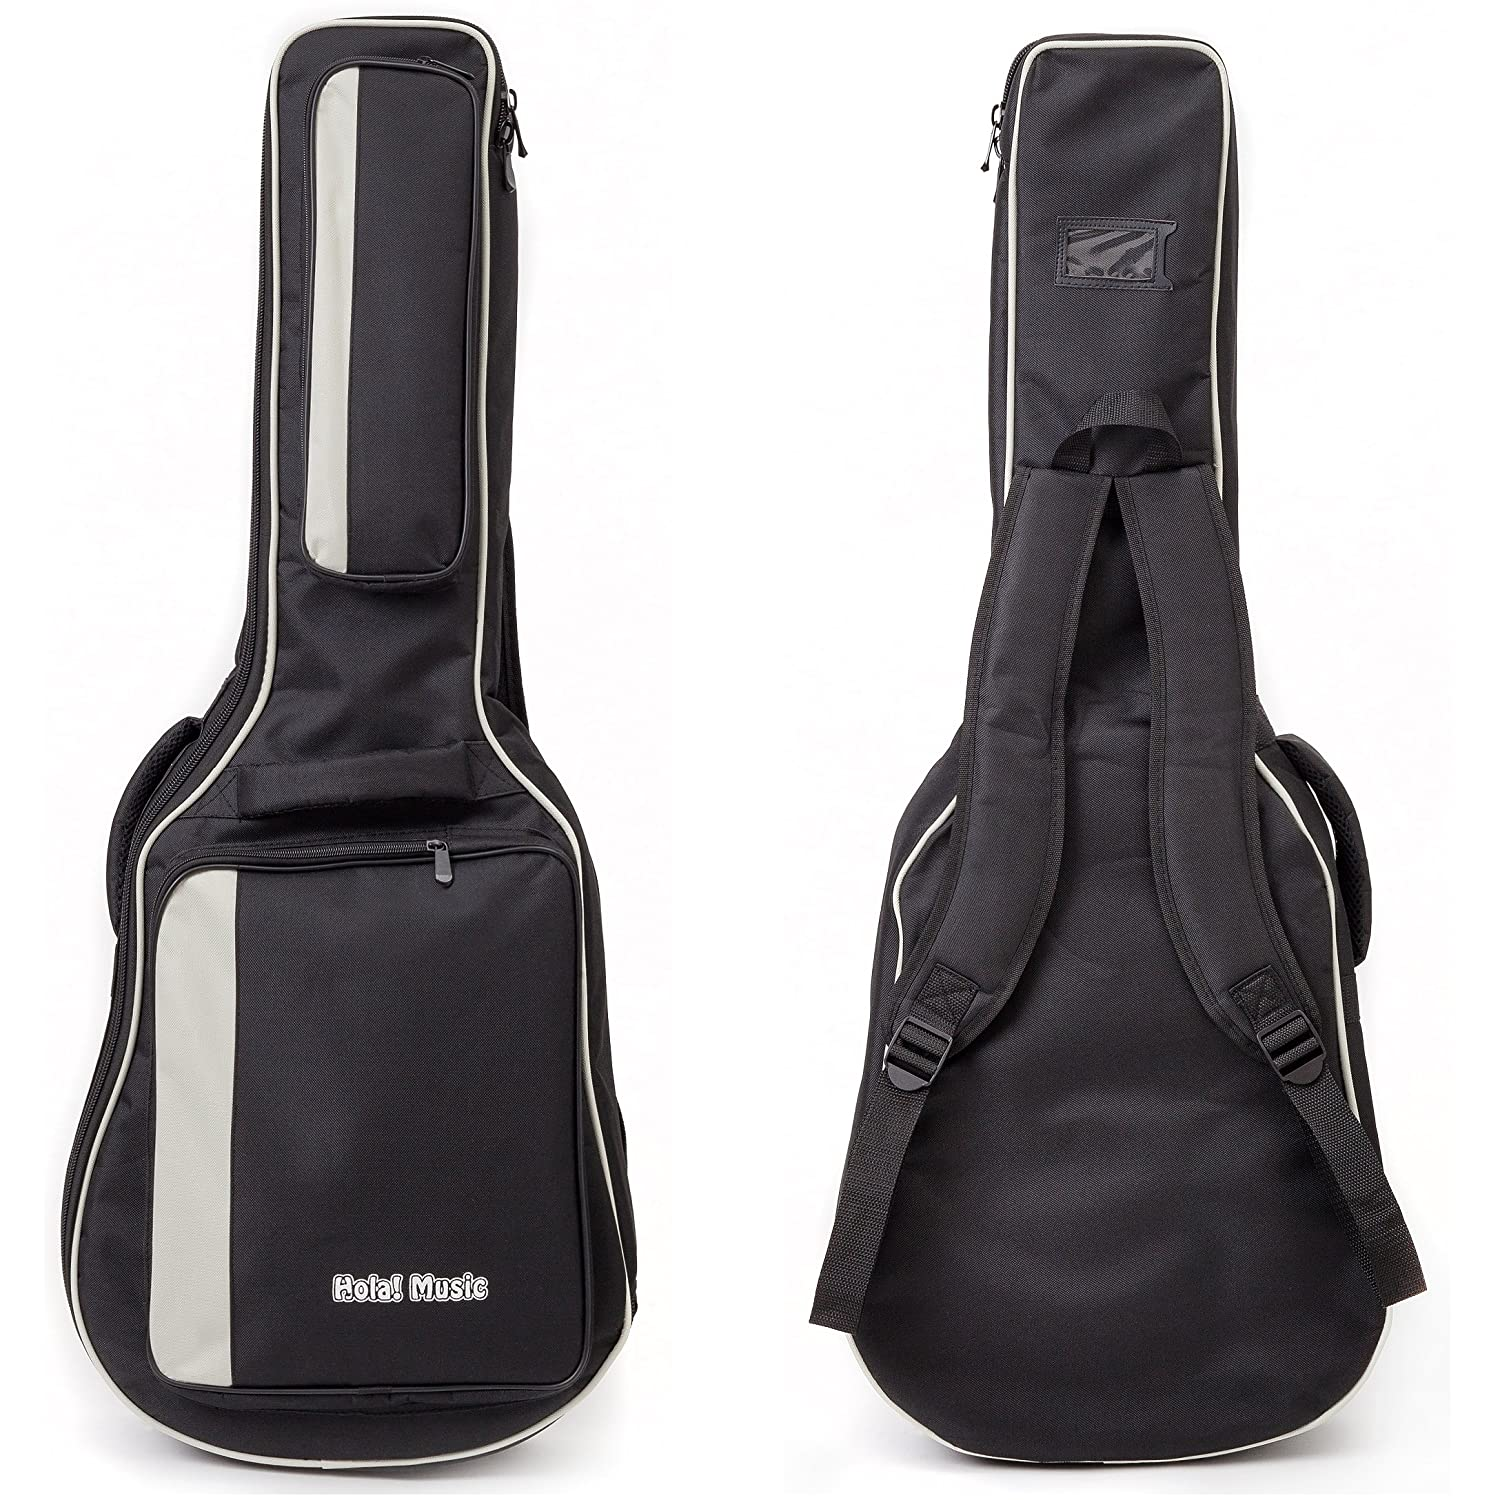 Electric Guitar Gig Bag by Hola! Music, Deluxe Series with 15mm Padding, Black MUS267297